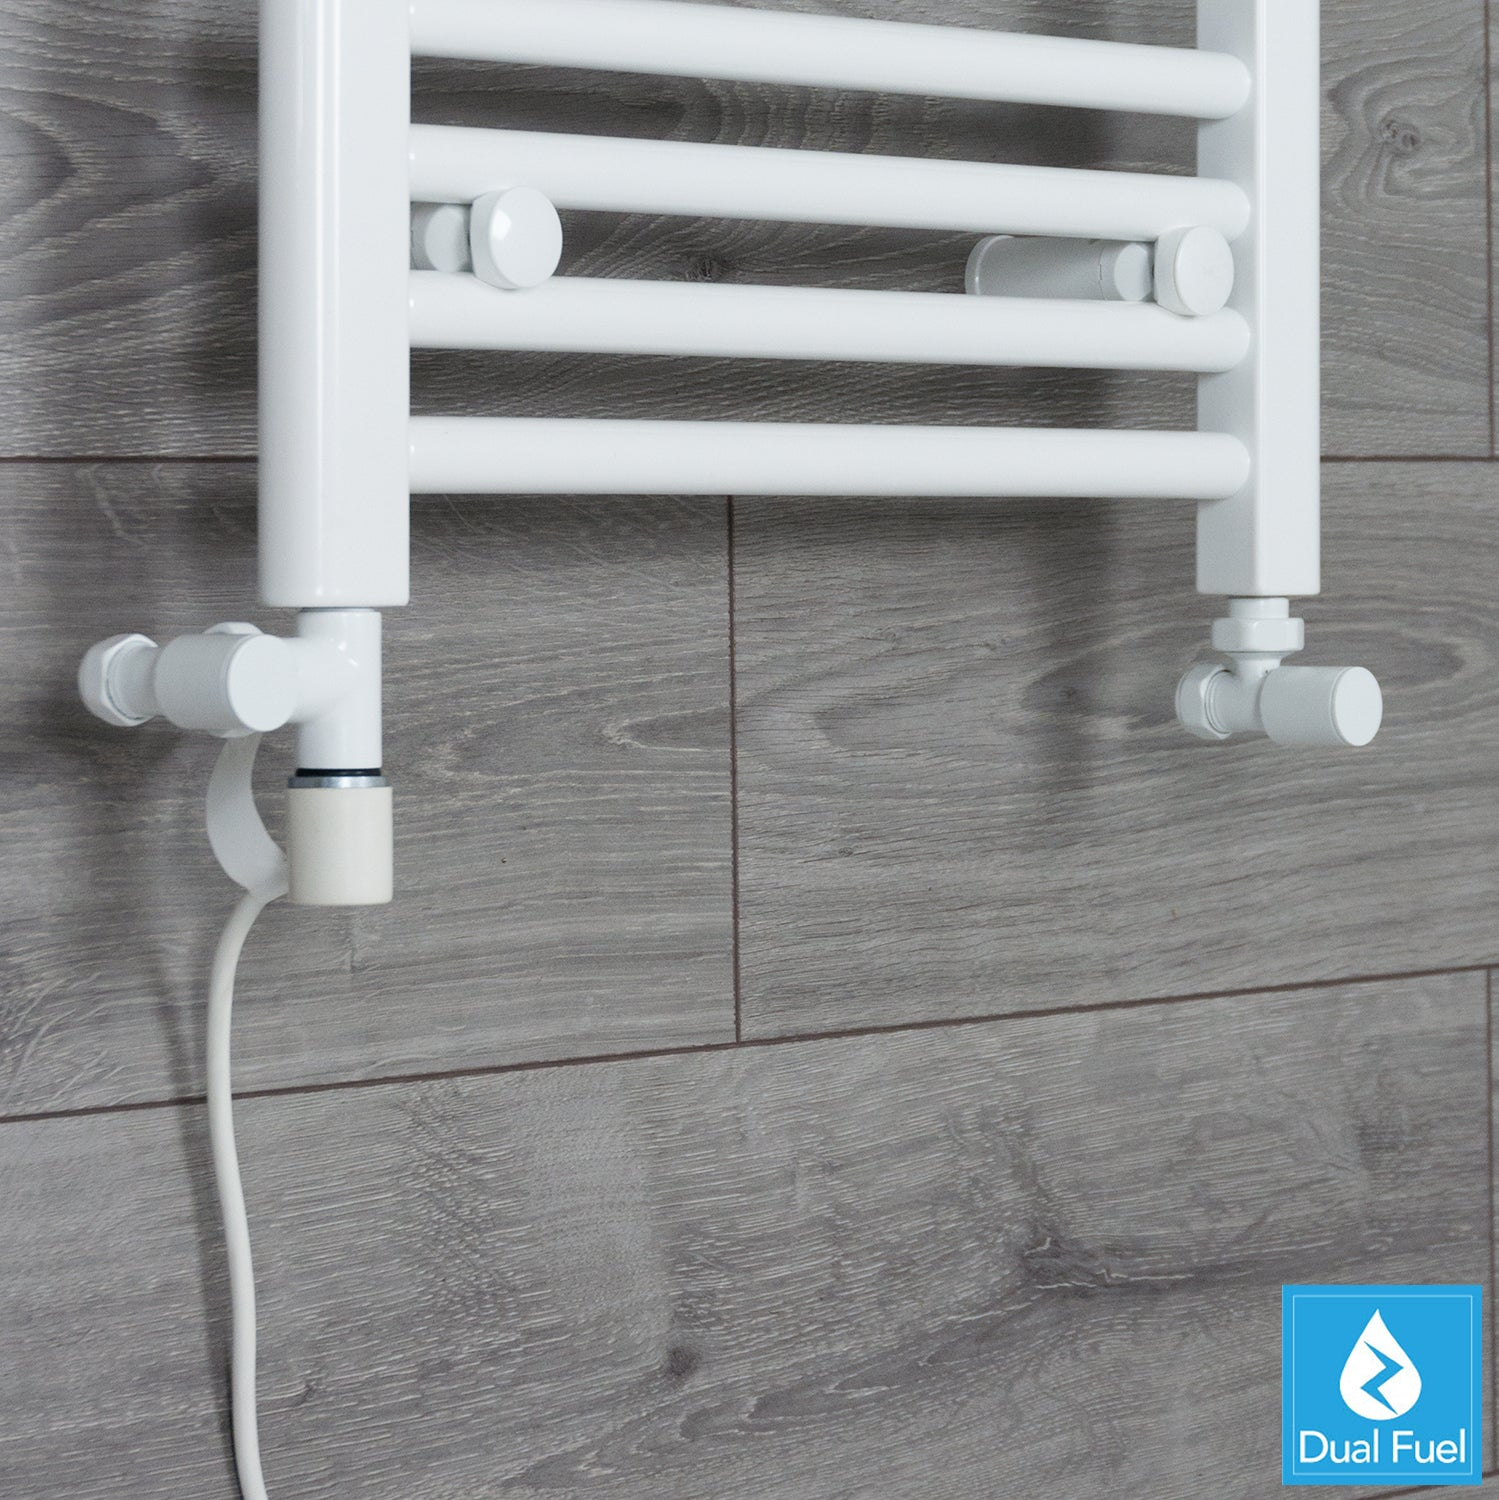 White Single Heat Dual Fuel Kit For Heated Towel Rail Radiator